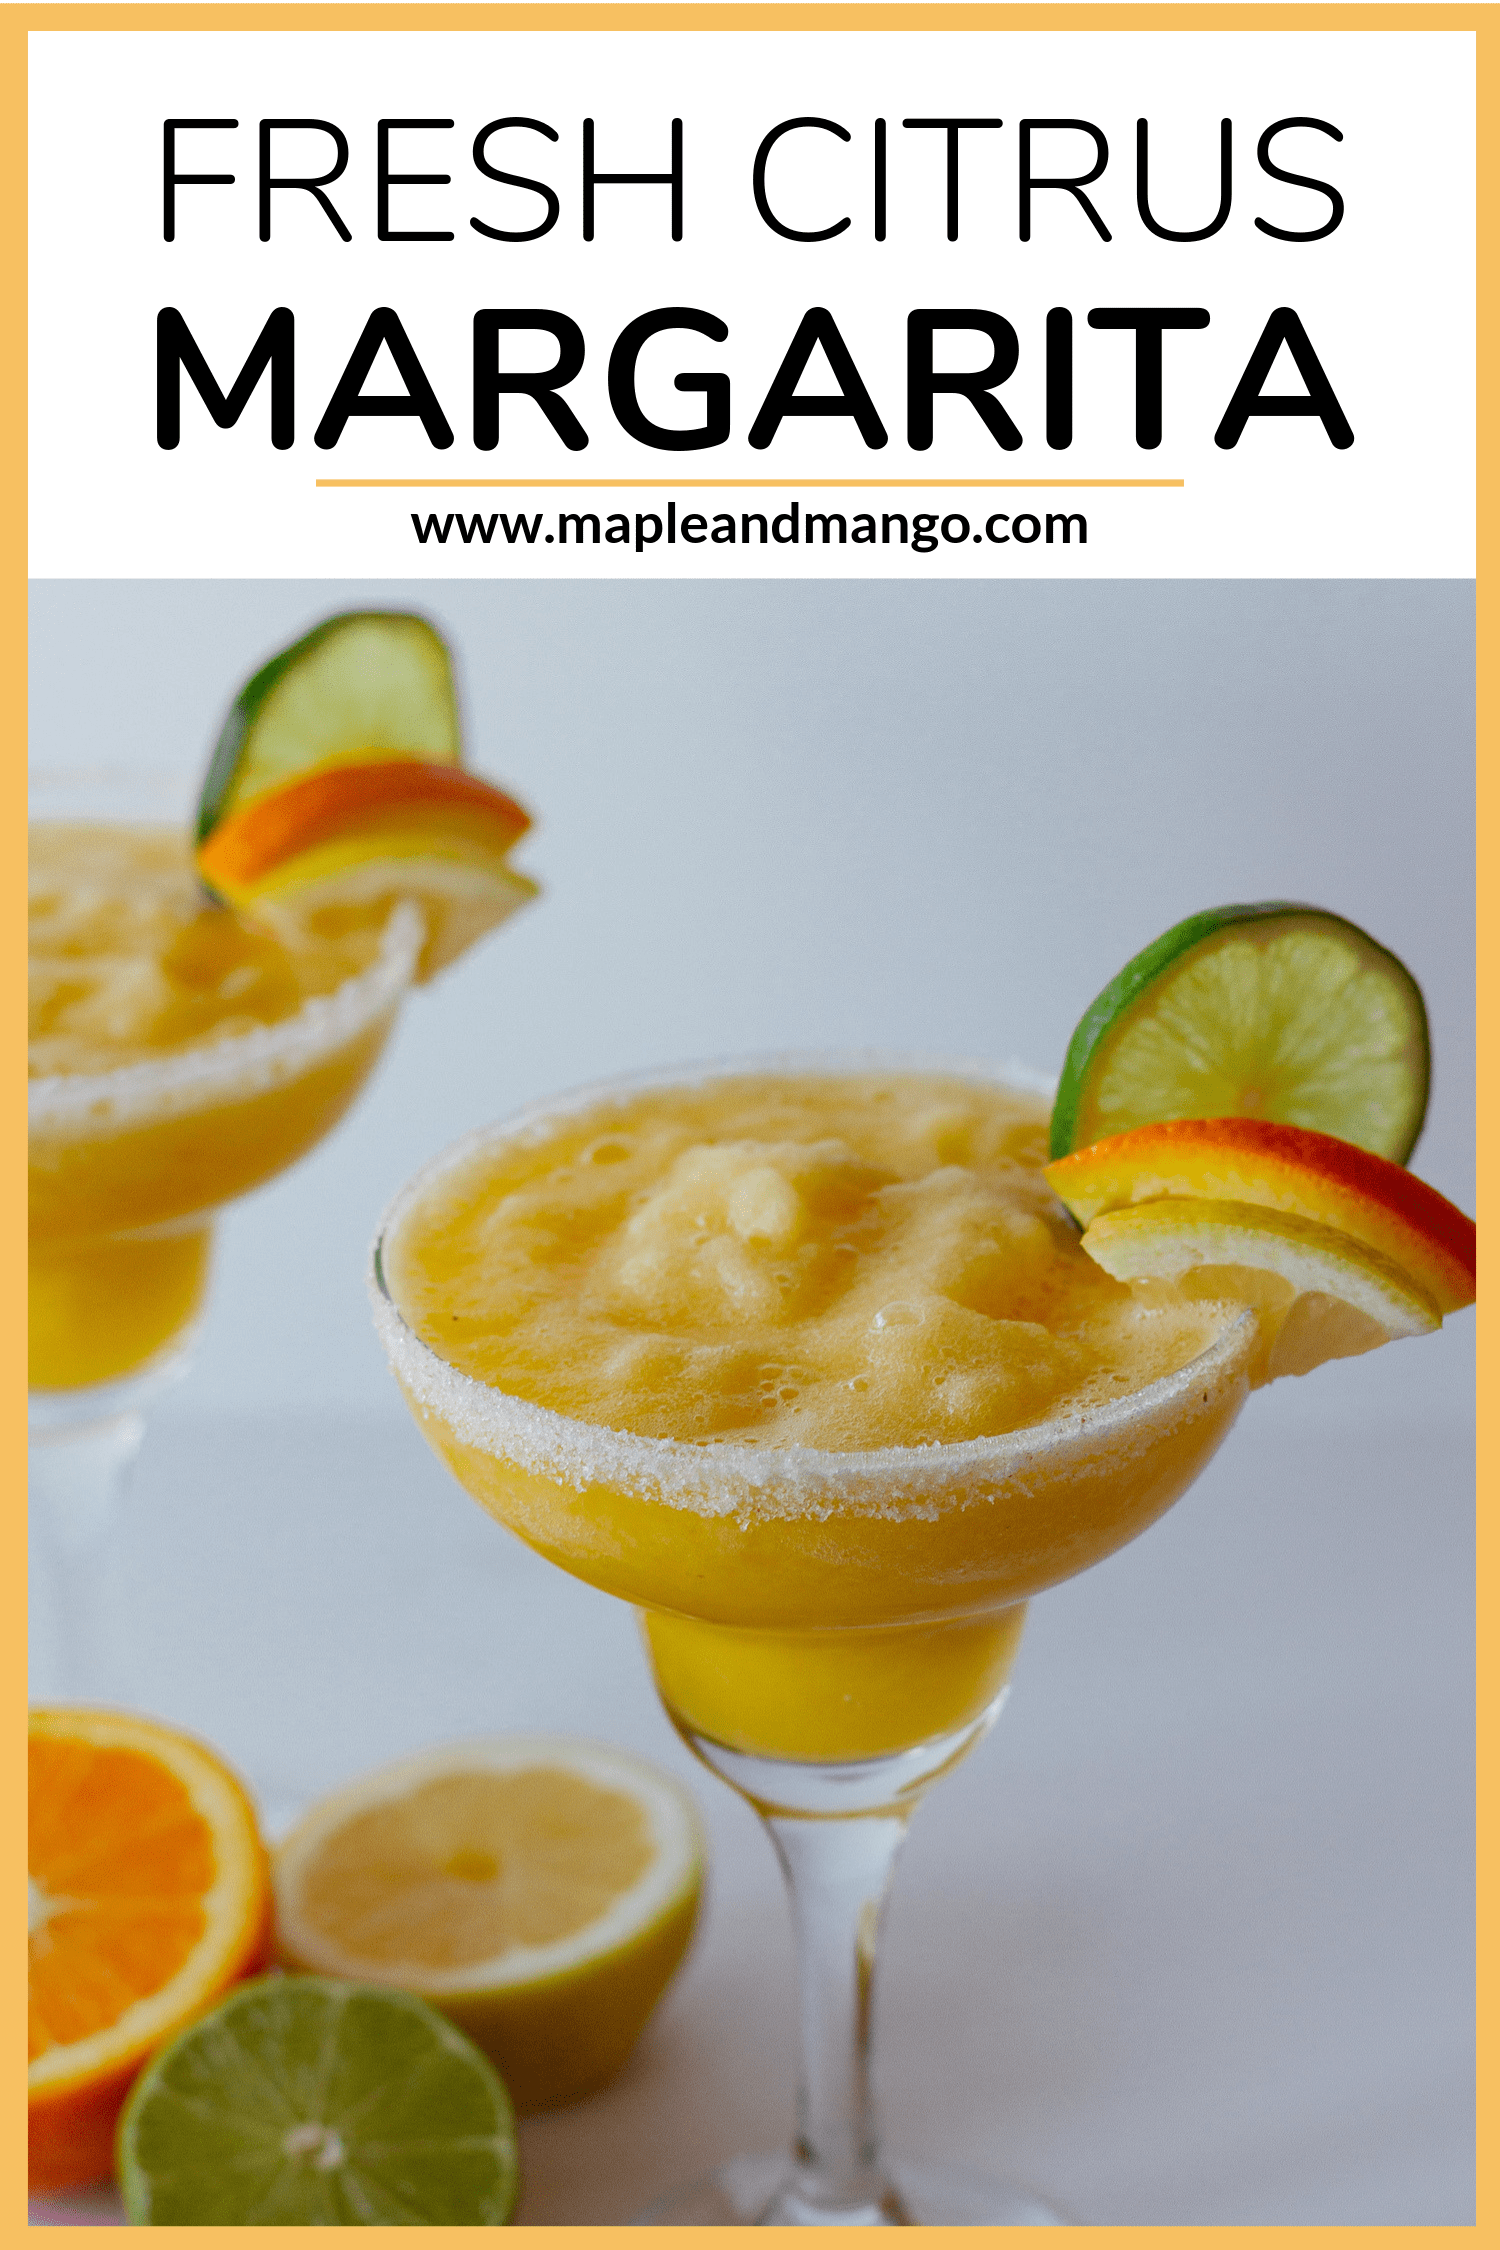 fresh citrus margarita with text overlay